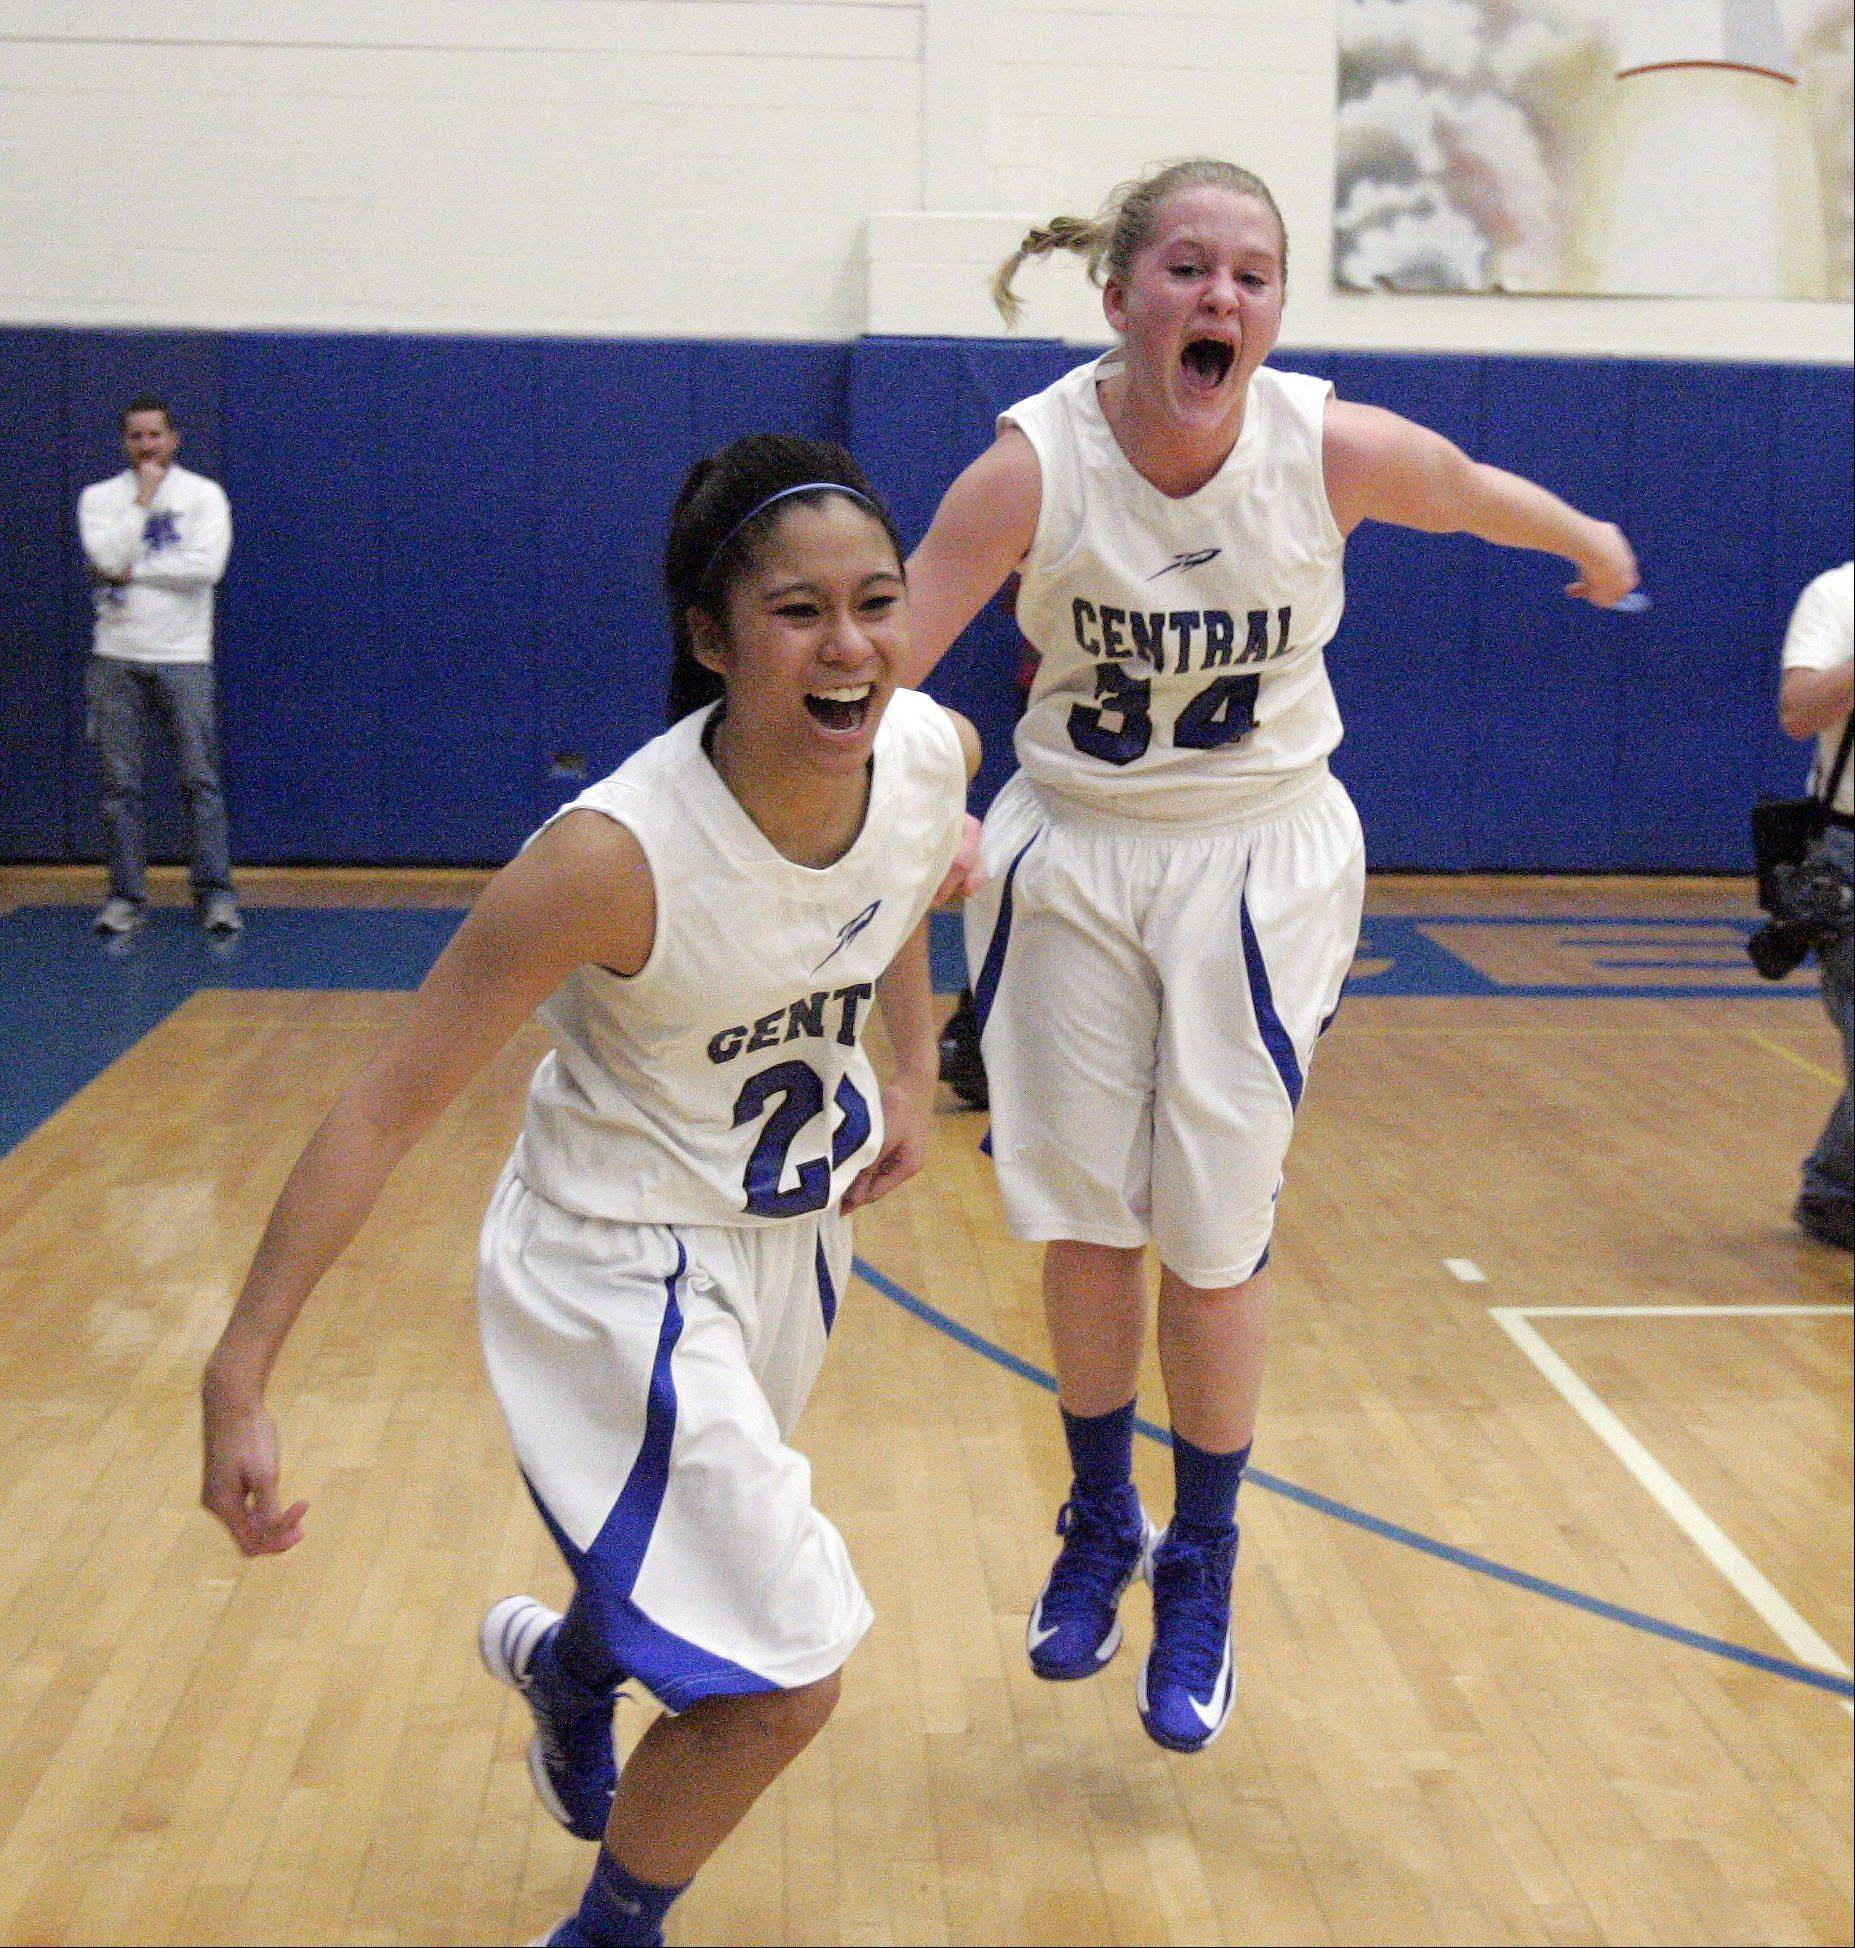 Burlington Central's Camille Delacruz (23) and Samantha Pryor (34) Celebrate after Burlington Central beat Plano 38-34 for the IHSA Class 3A regional girls basketball championship Friday February 15, 2013 at Burlington.